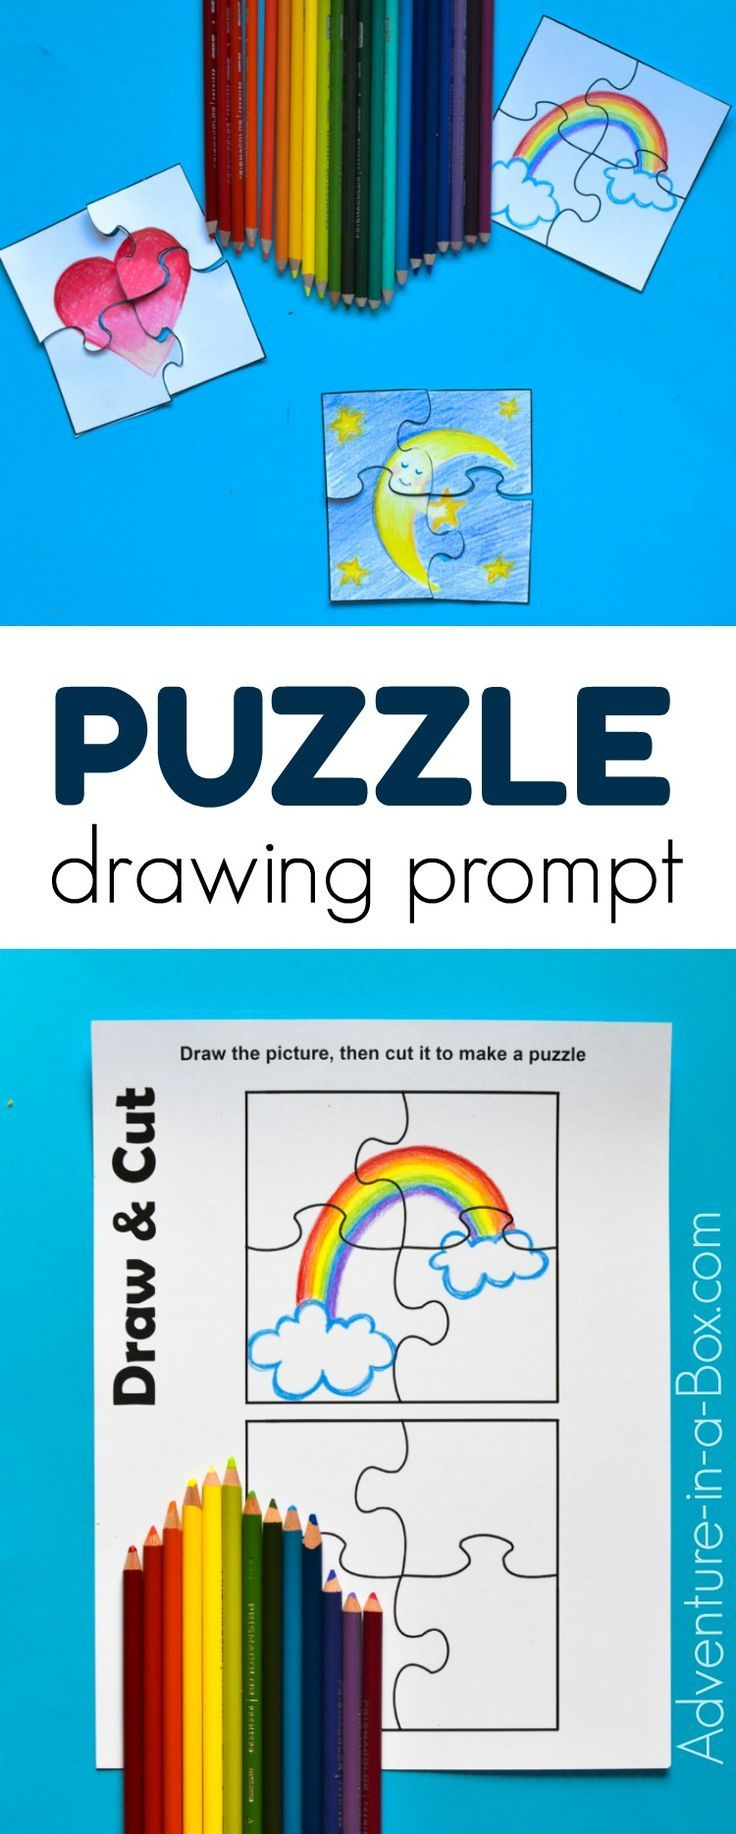 Puzzle Drawing Prompt For Kids With A Free Printable Template | Free - Printable Drawing Puzzles